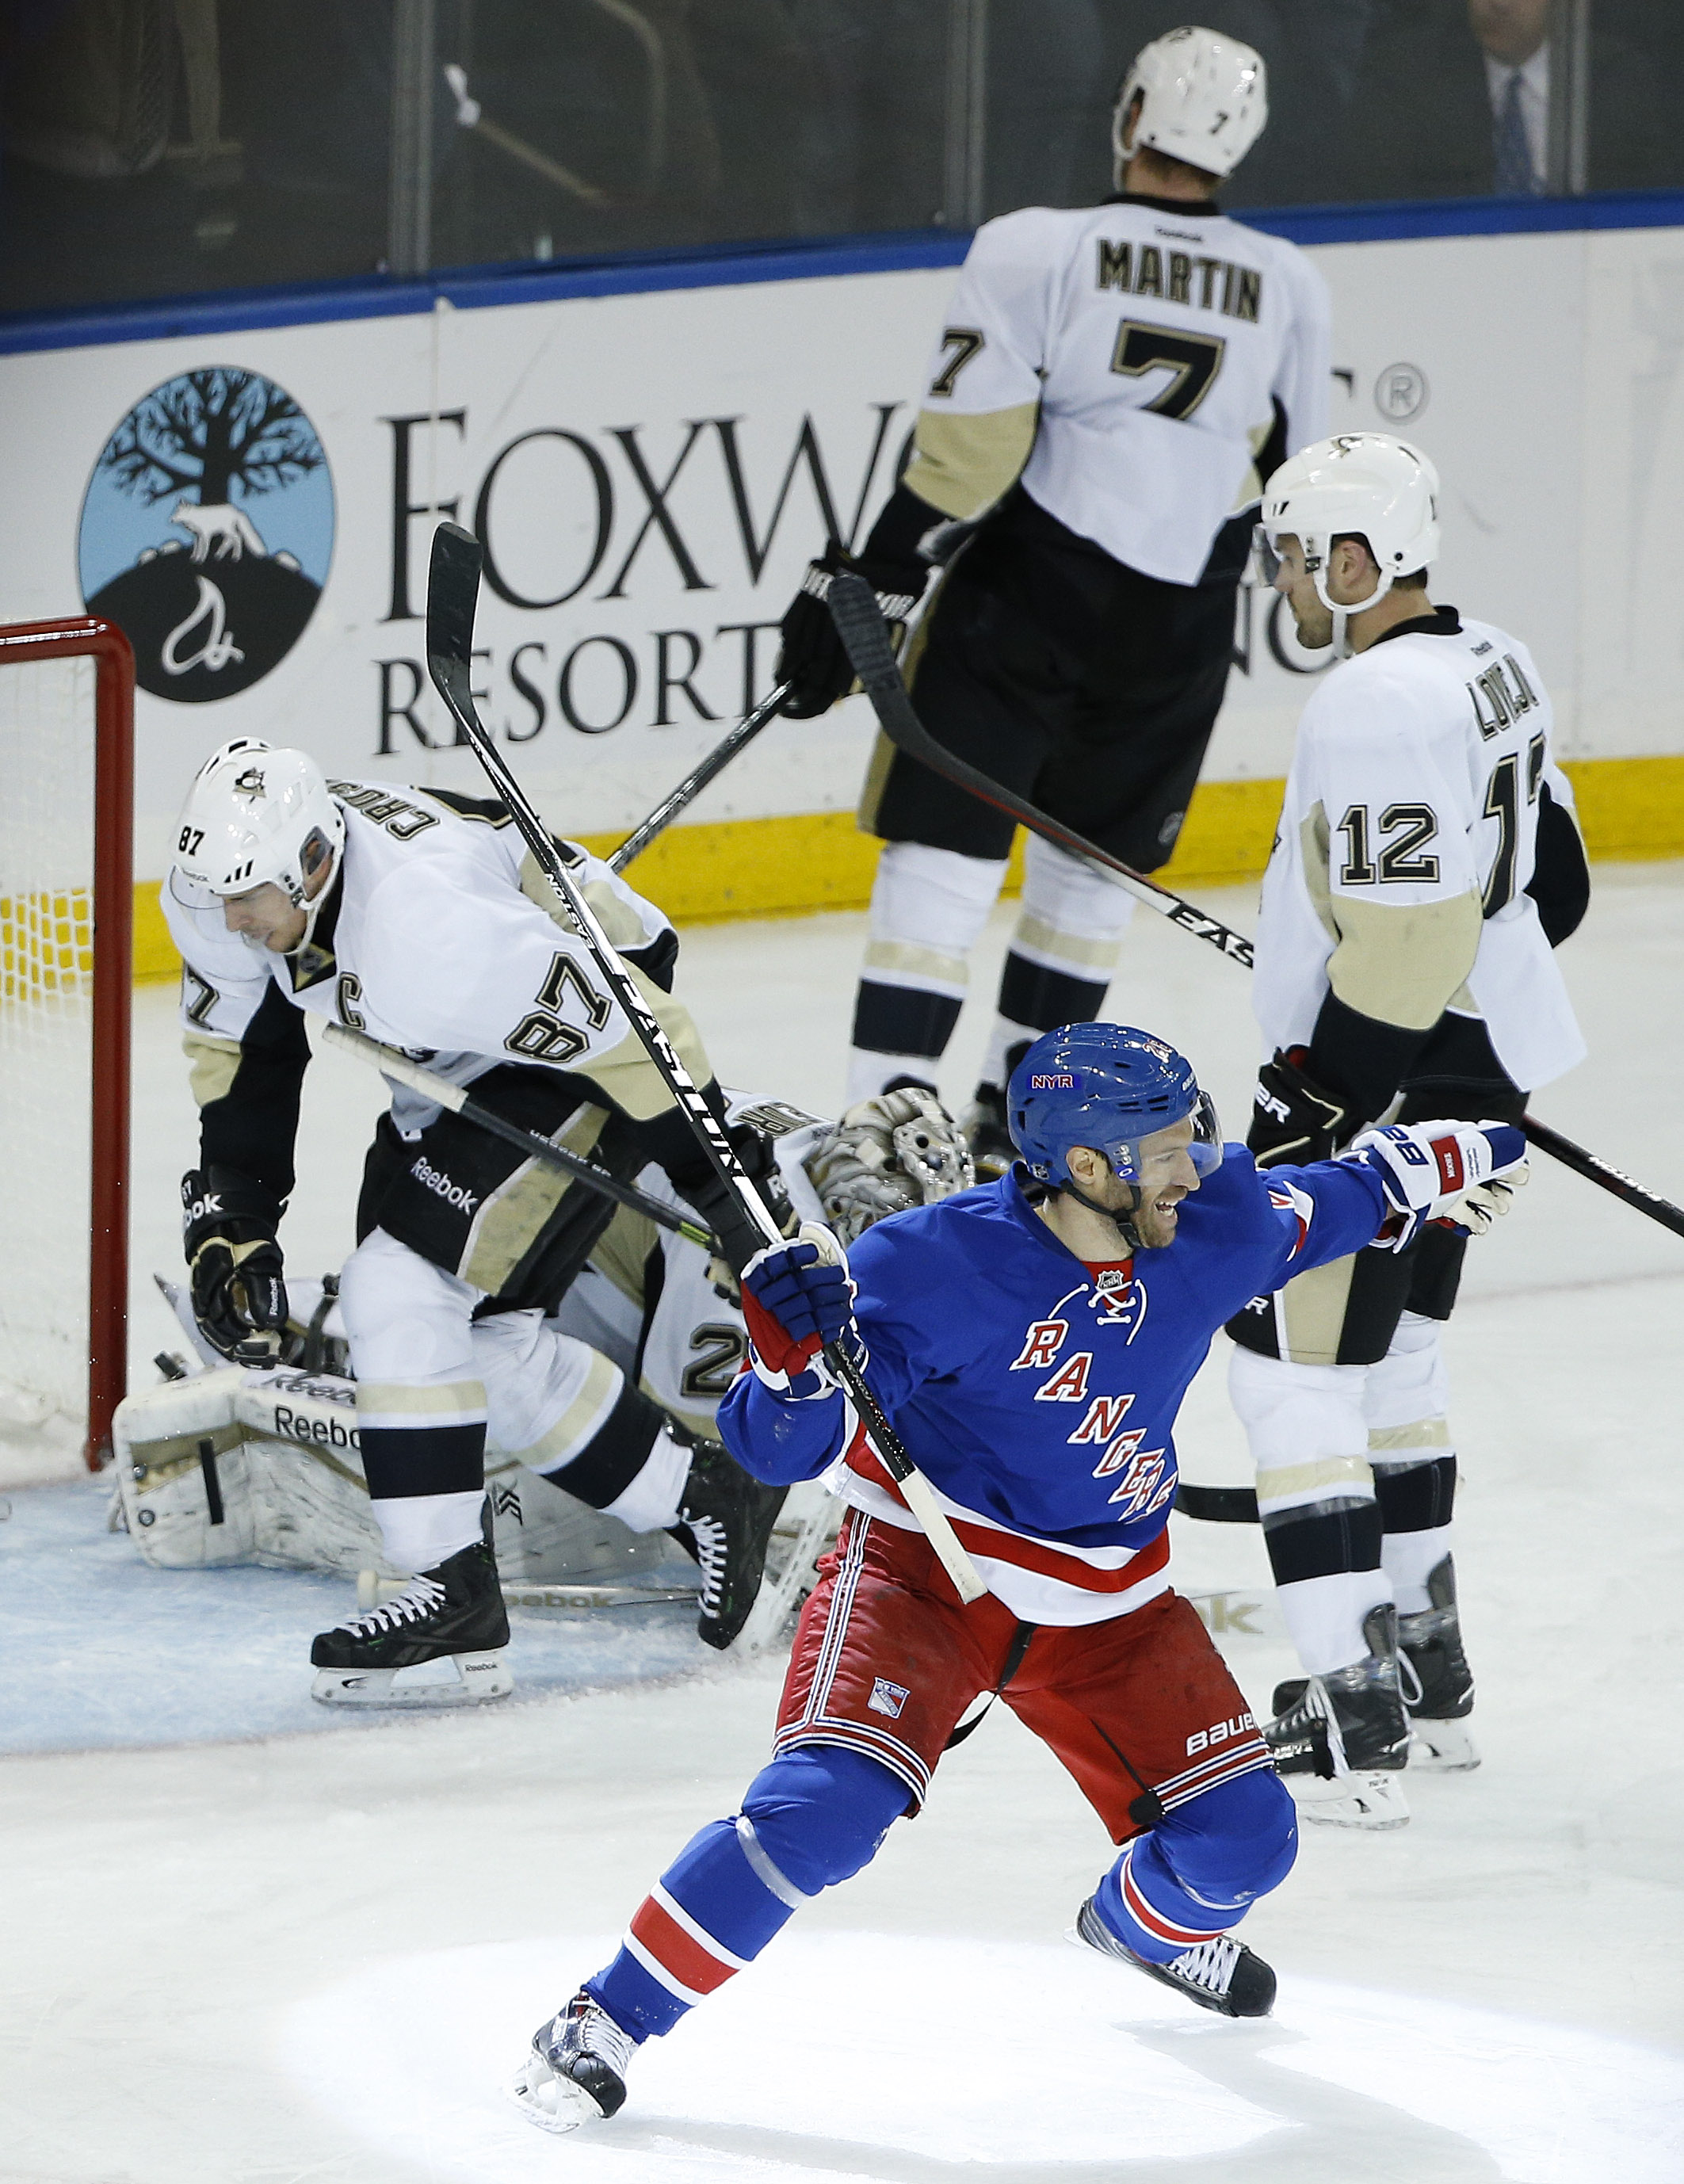 New York Rangers center Dominic Moore (28) reacts after left wing Carl Hagelin scored the winning goal in overtime of Game 5 against the Pittsburgh Penguins in the first round of the NHL hockey Stanley Cup playoffs, Friday, April 24, 2015, in New York. Th